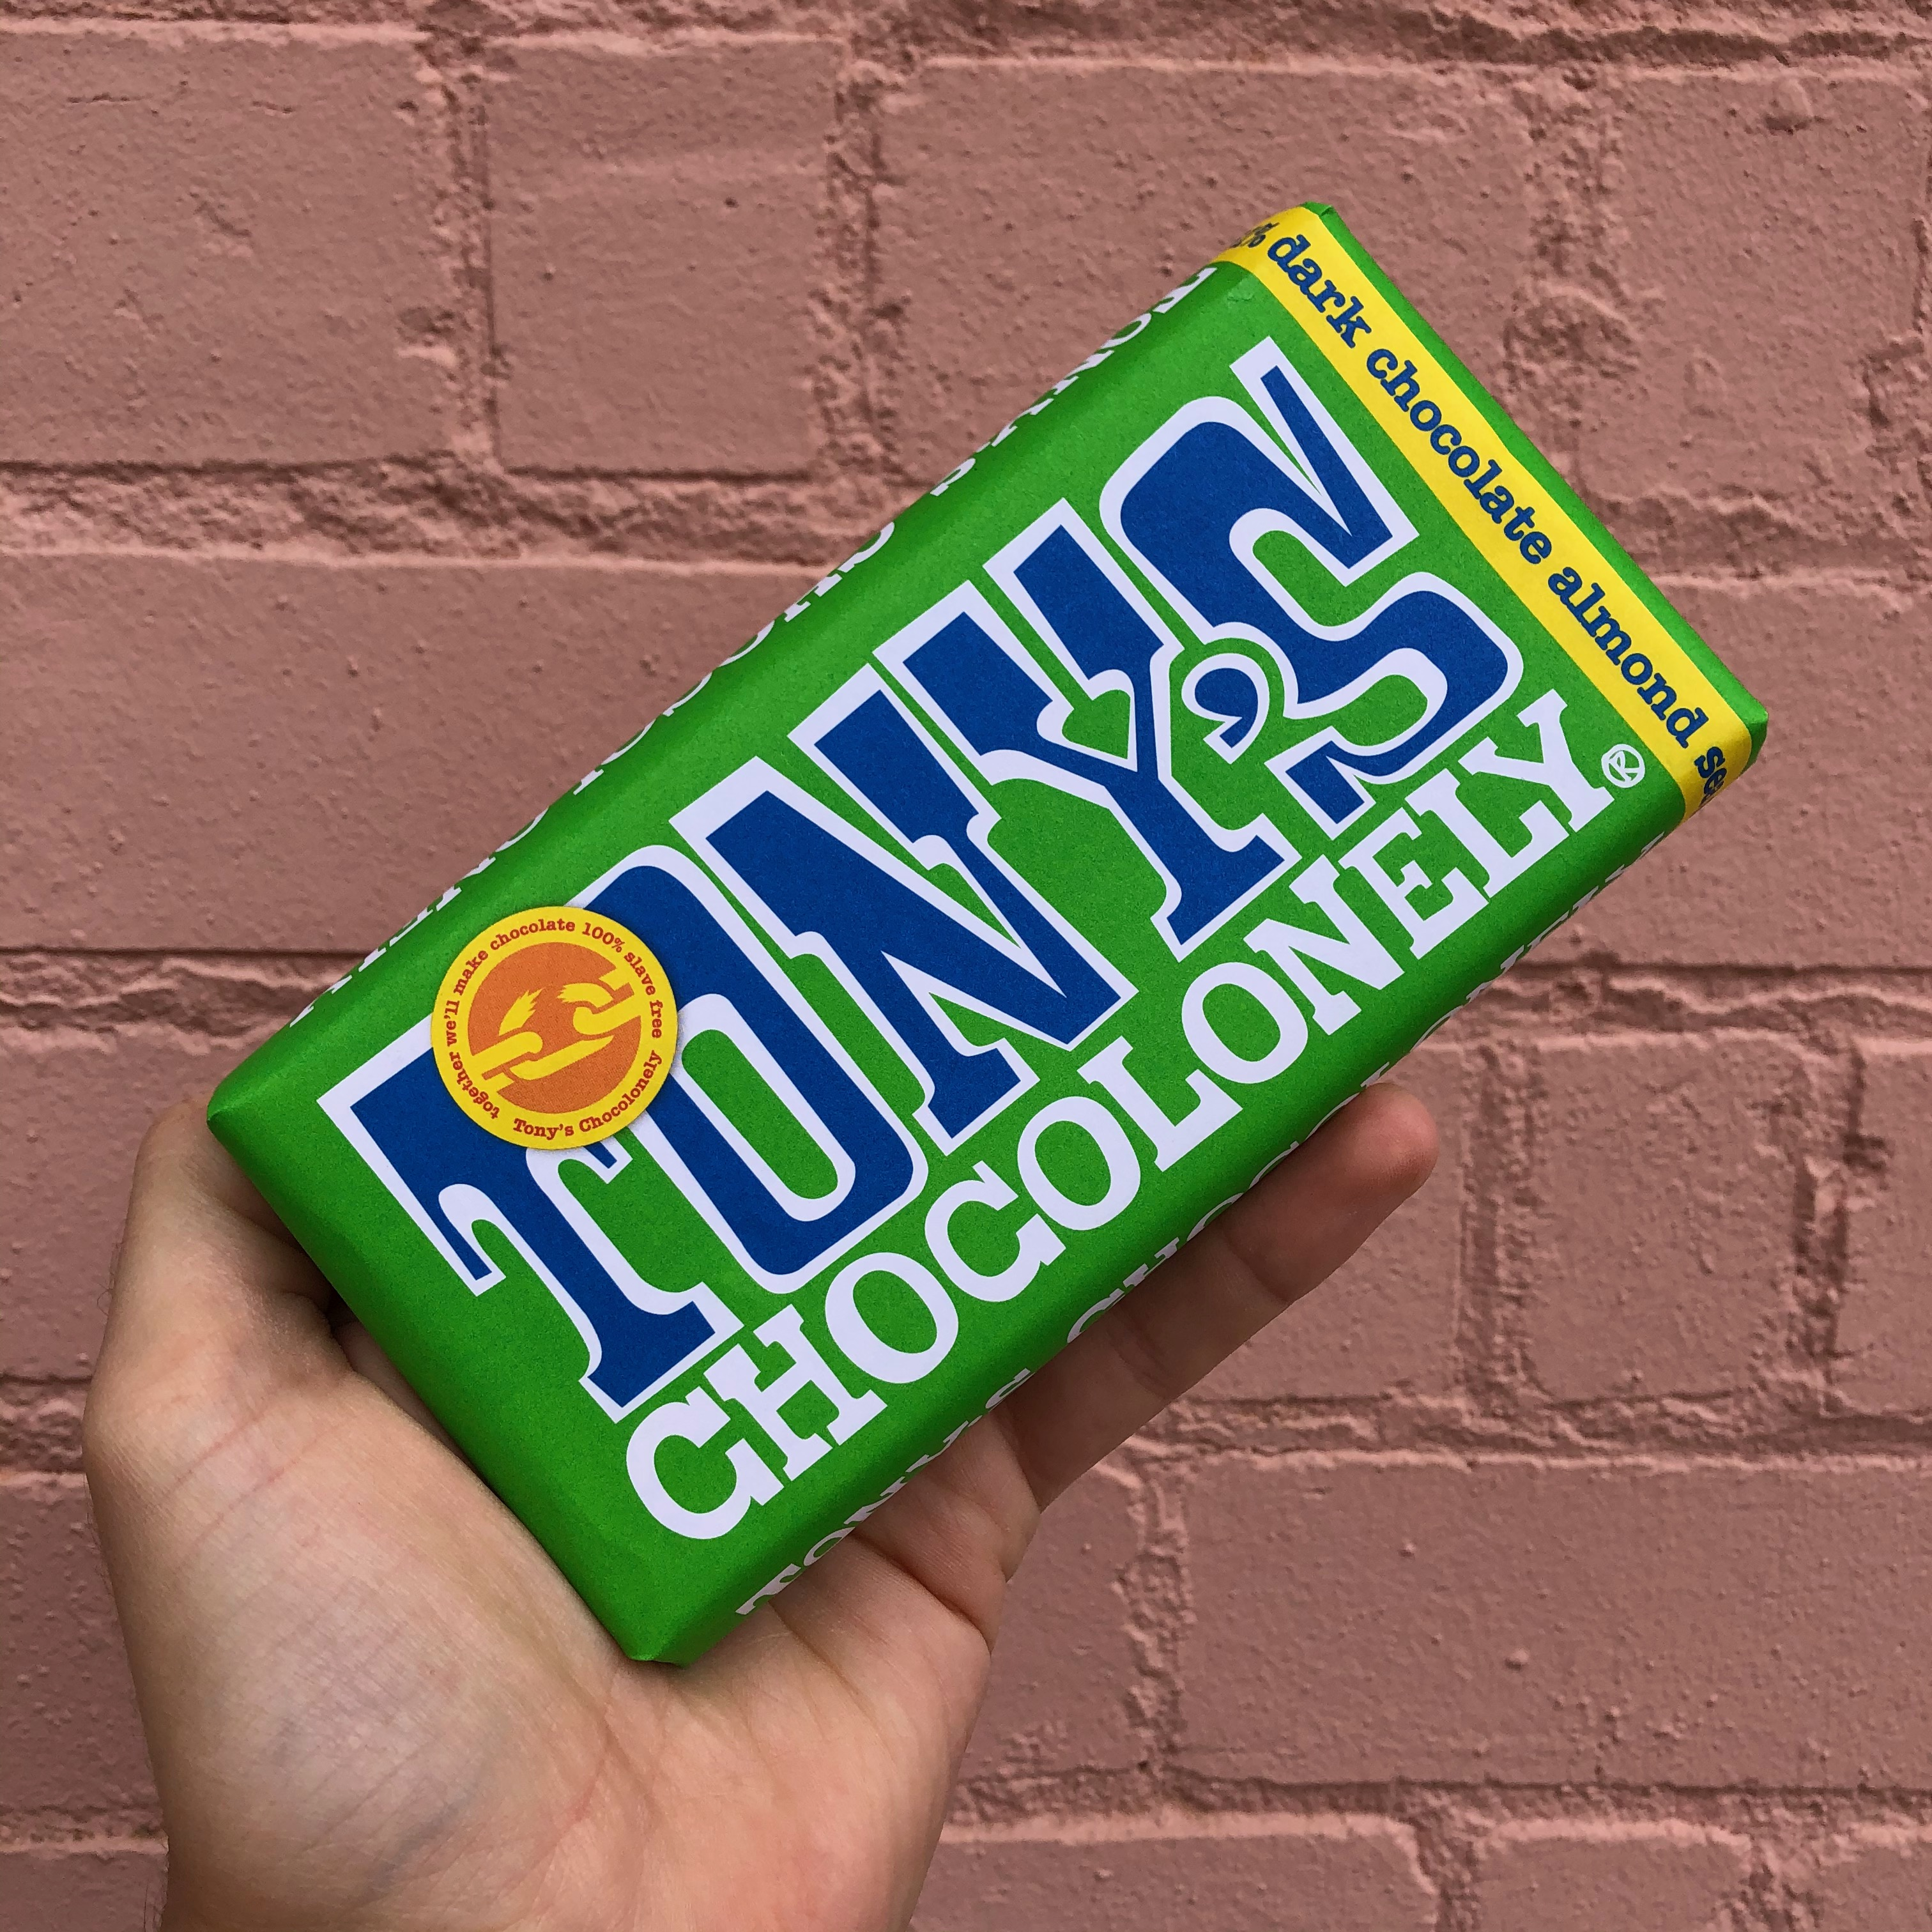 Tony's Chocolonely Dark Choc Almond & Sea Salt